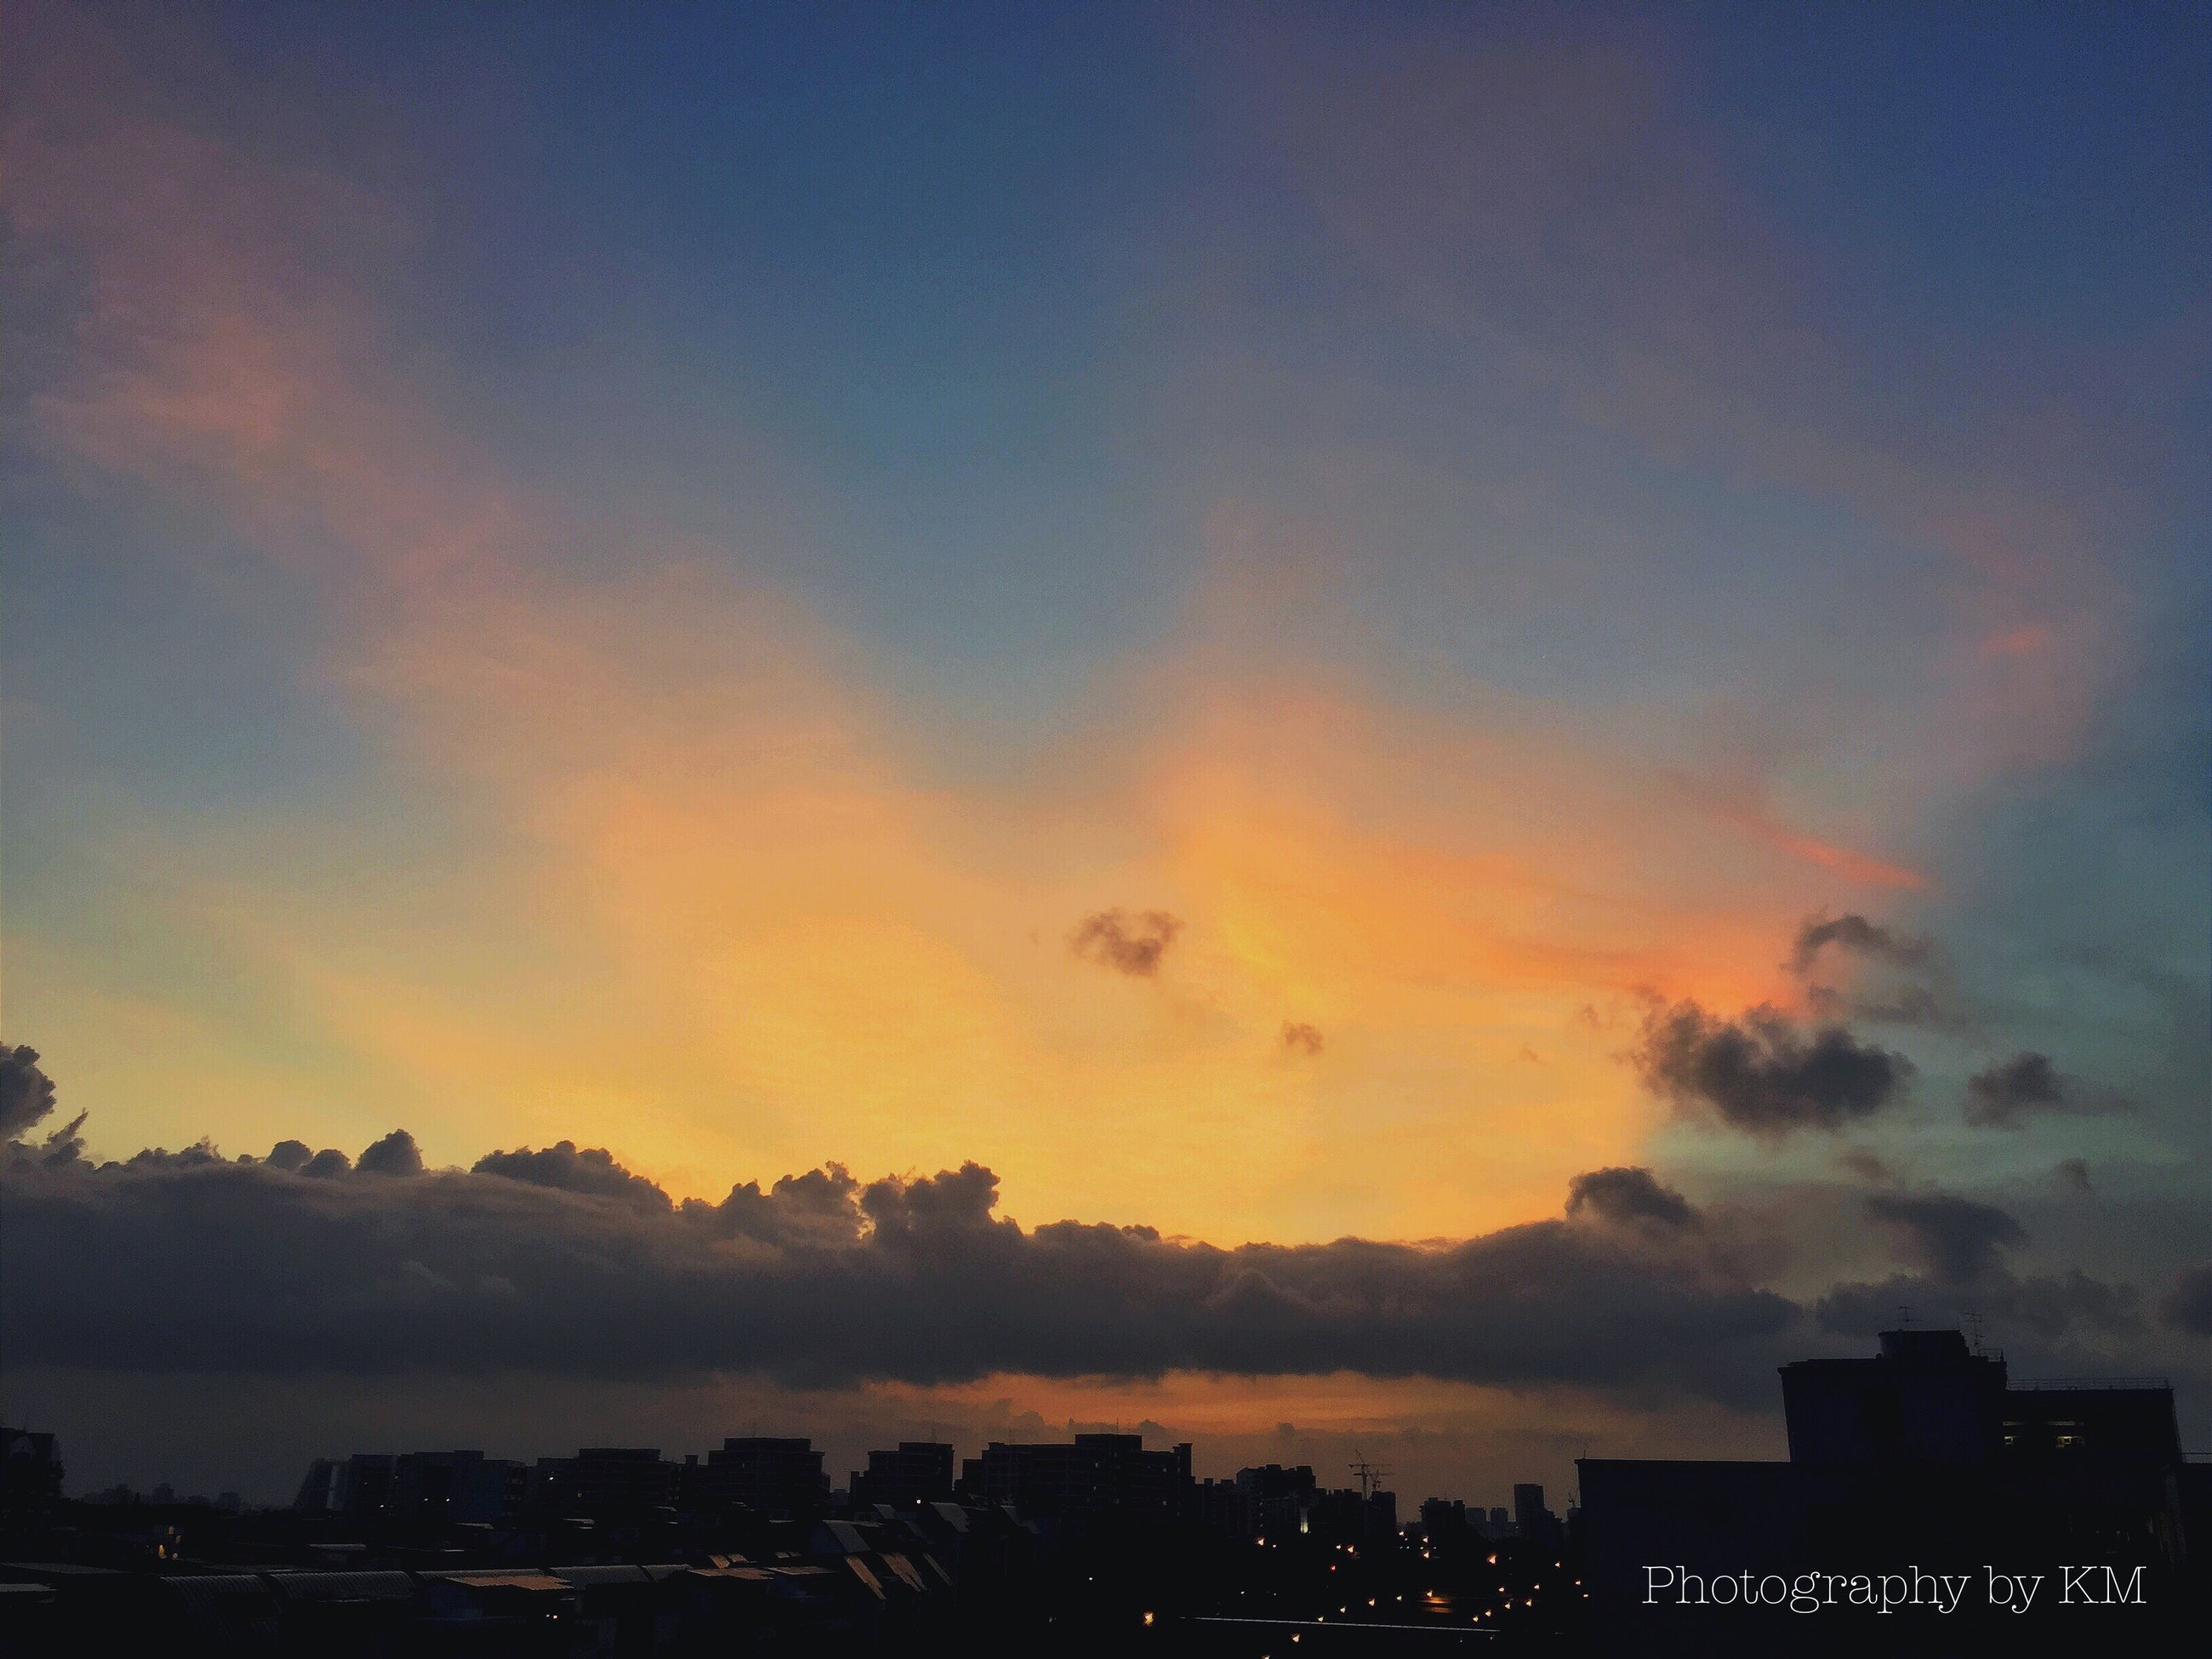 building exterior, sunset, architecture, built structure, silhouette, sky, city, cityscape, dusk, cloud - sky, residential building, illuminated, orange color, scenics, residential structure, beauty in nature, nature, house, residential district, outdoors